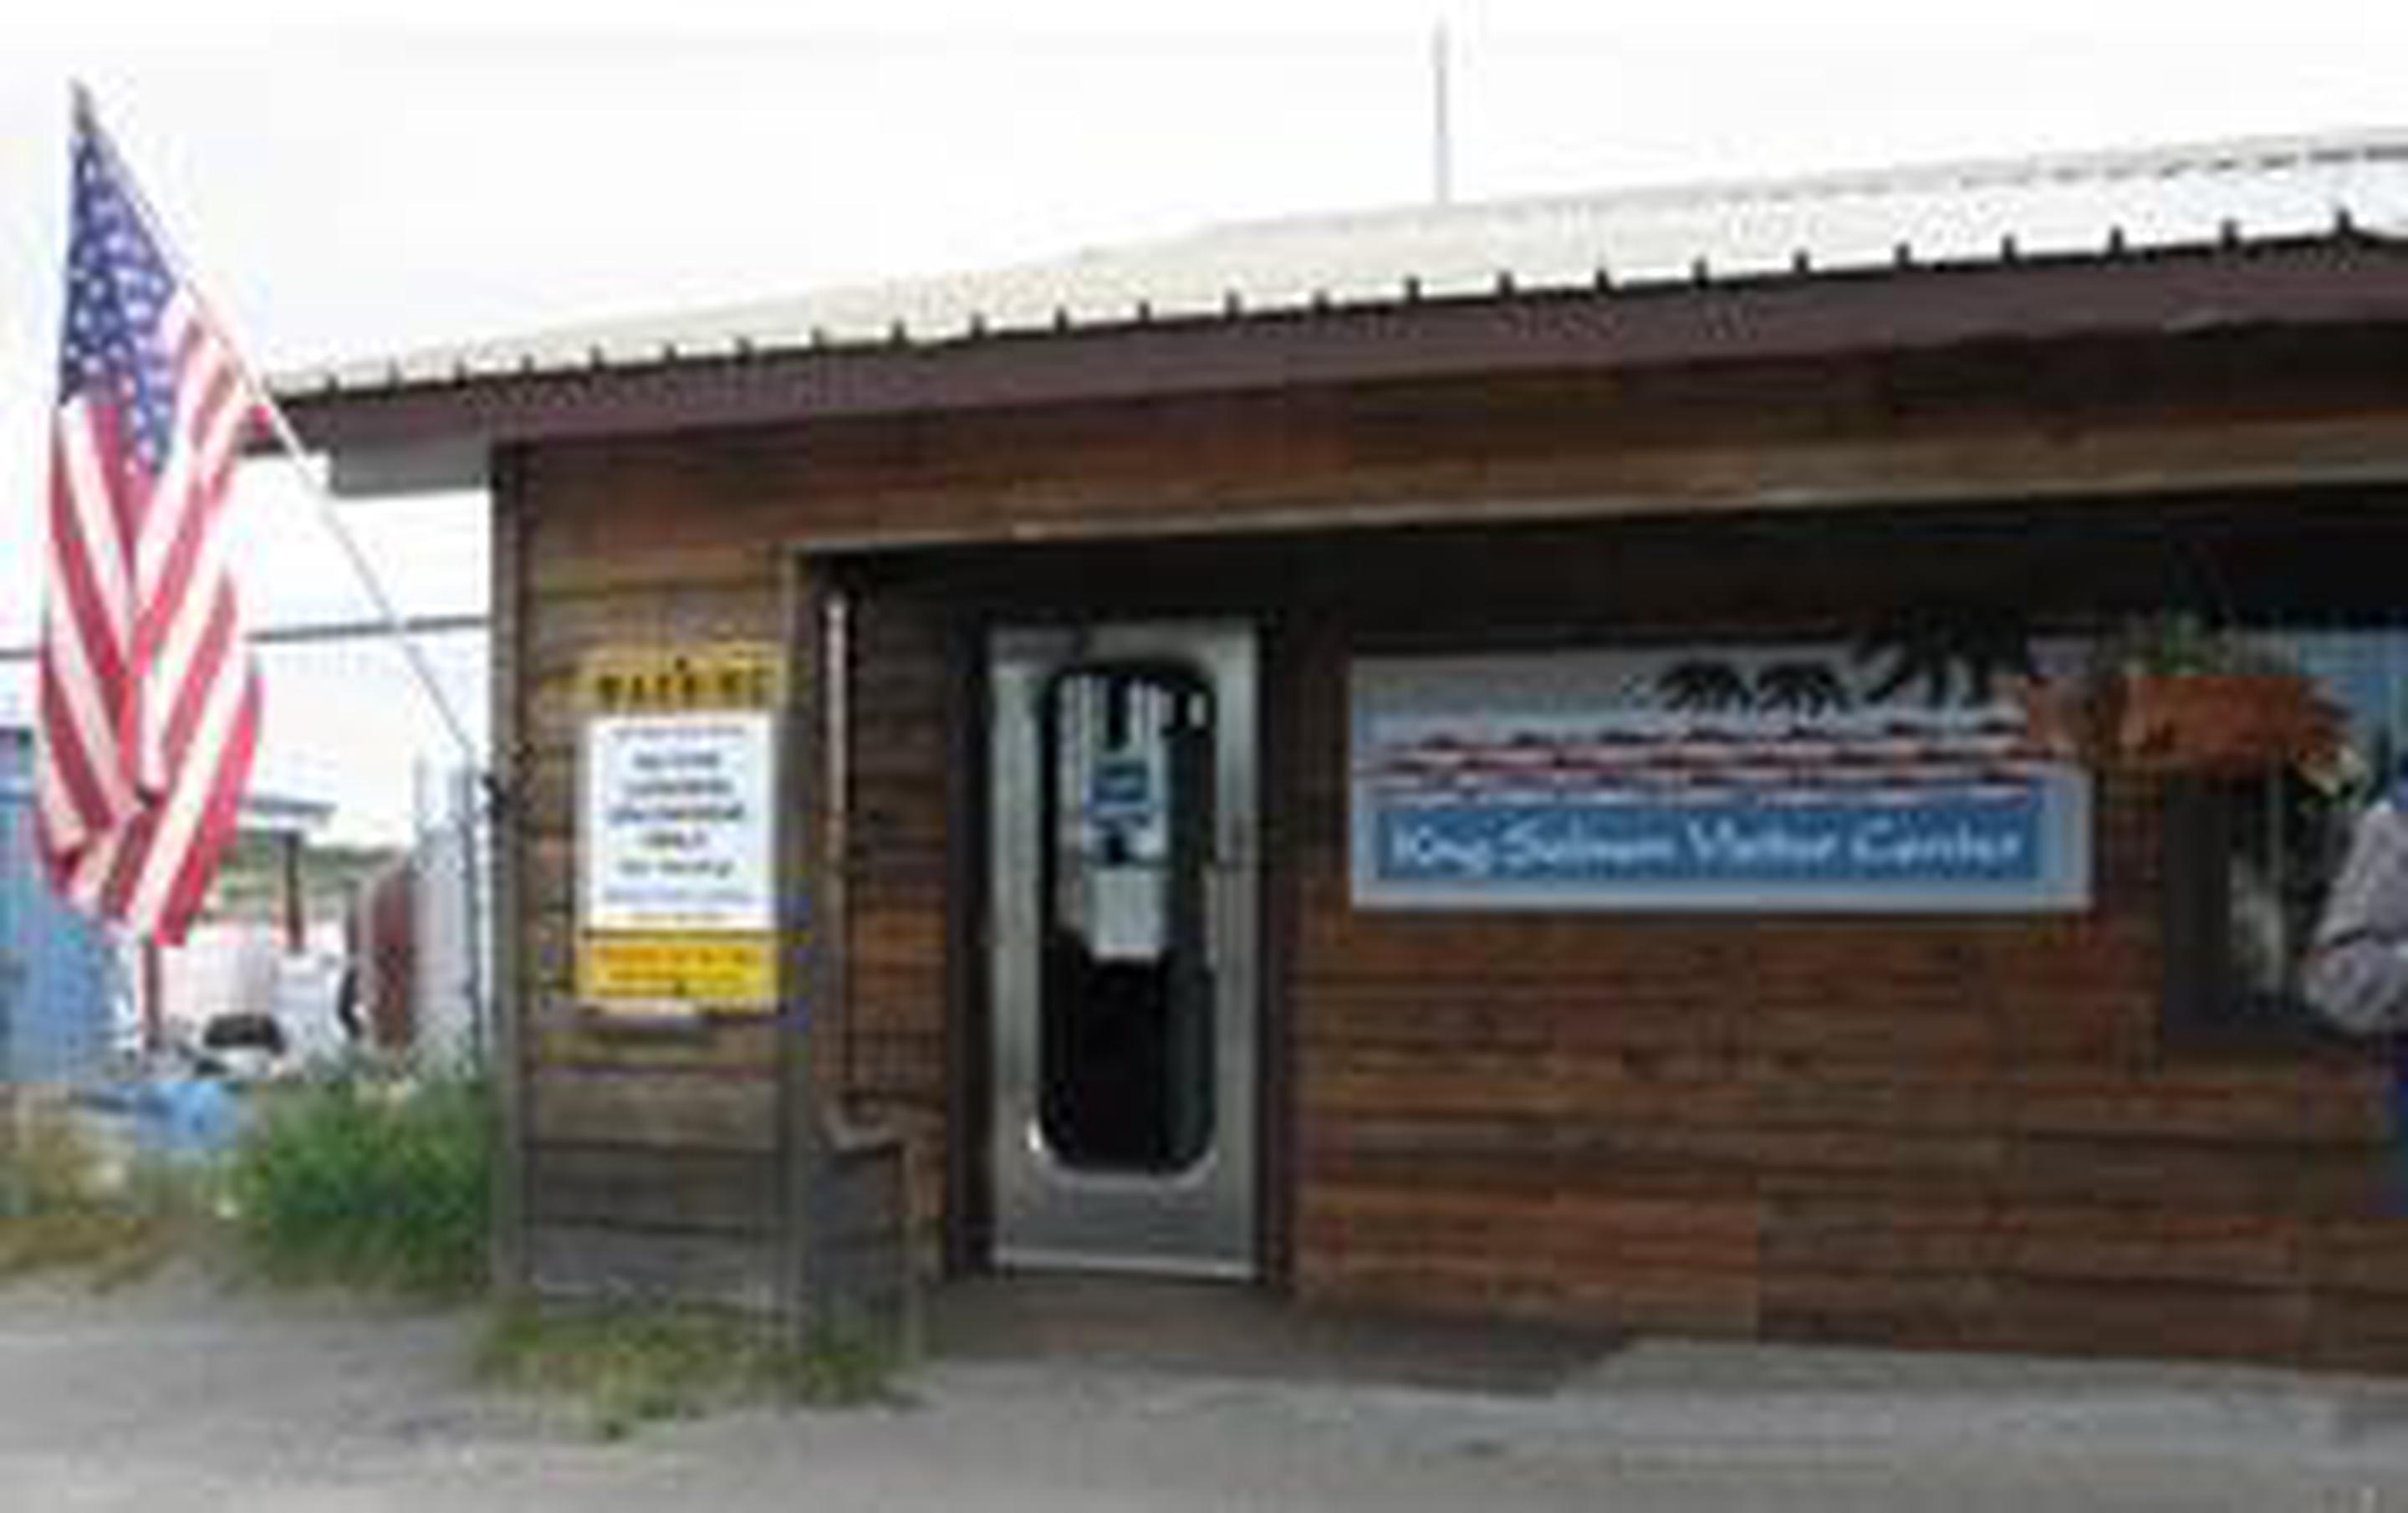 King Salmon Visitor CenterThe King Salmon Visitor Center is often the first stop on the journey to explore Katmai National Park & Preserve and other public lands.